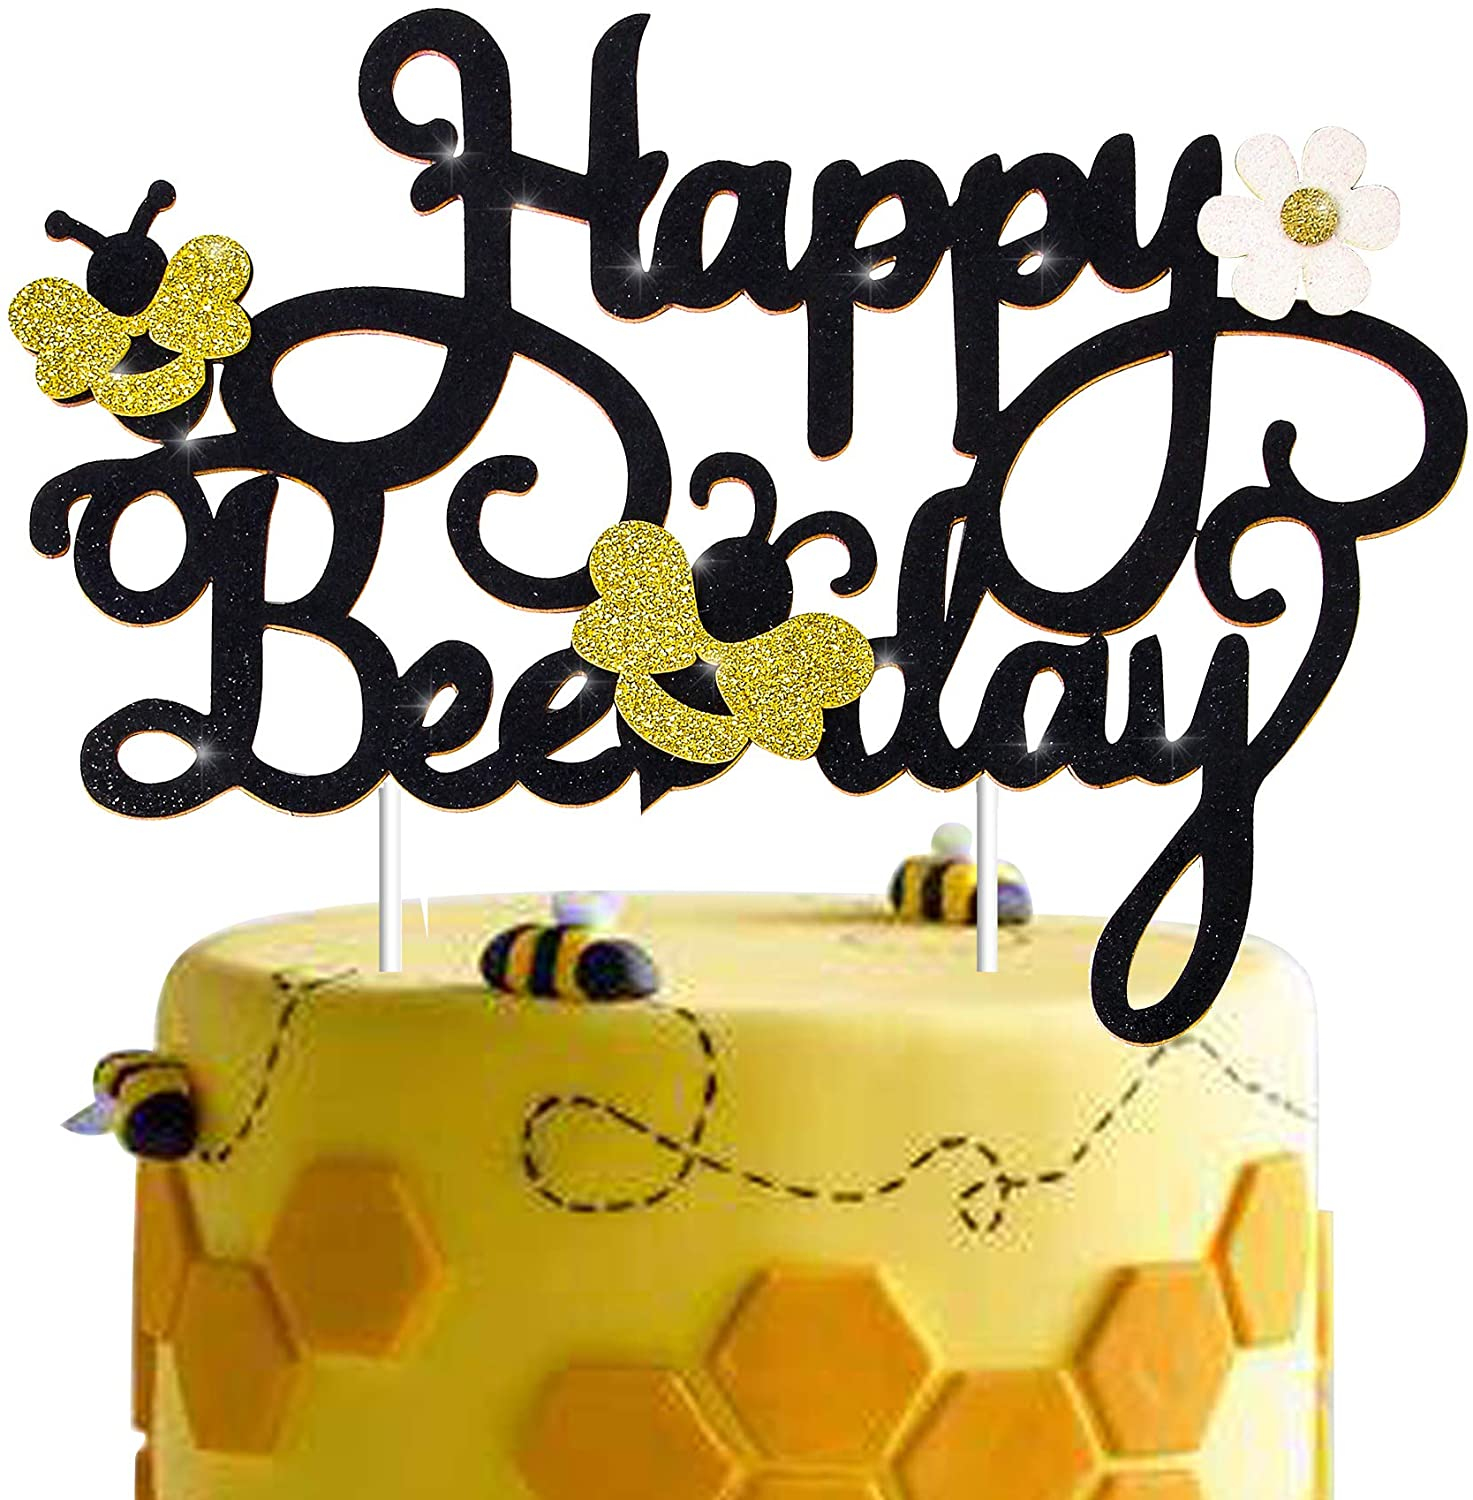 Bee Themed Birthday Party Cake Topper Decoration for Bee Bumble Themed Happy 1st 2nd Birthday Party Gender Reveal Party Baby Shower Glitter Honey Bumble Bee Cake Topper Photo Booth Prop Supplies